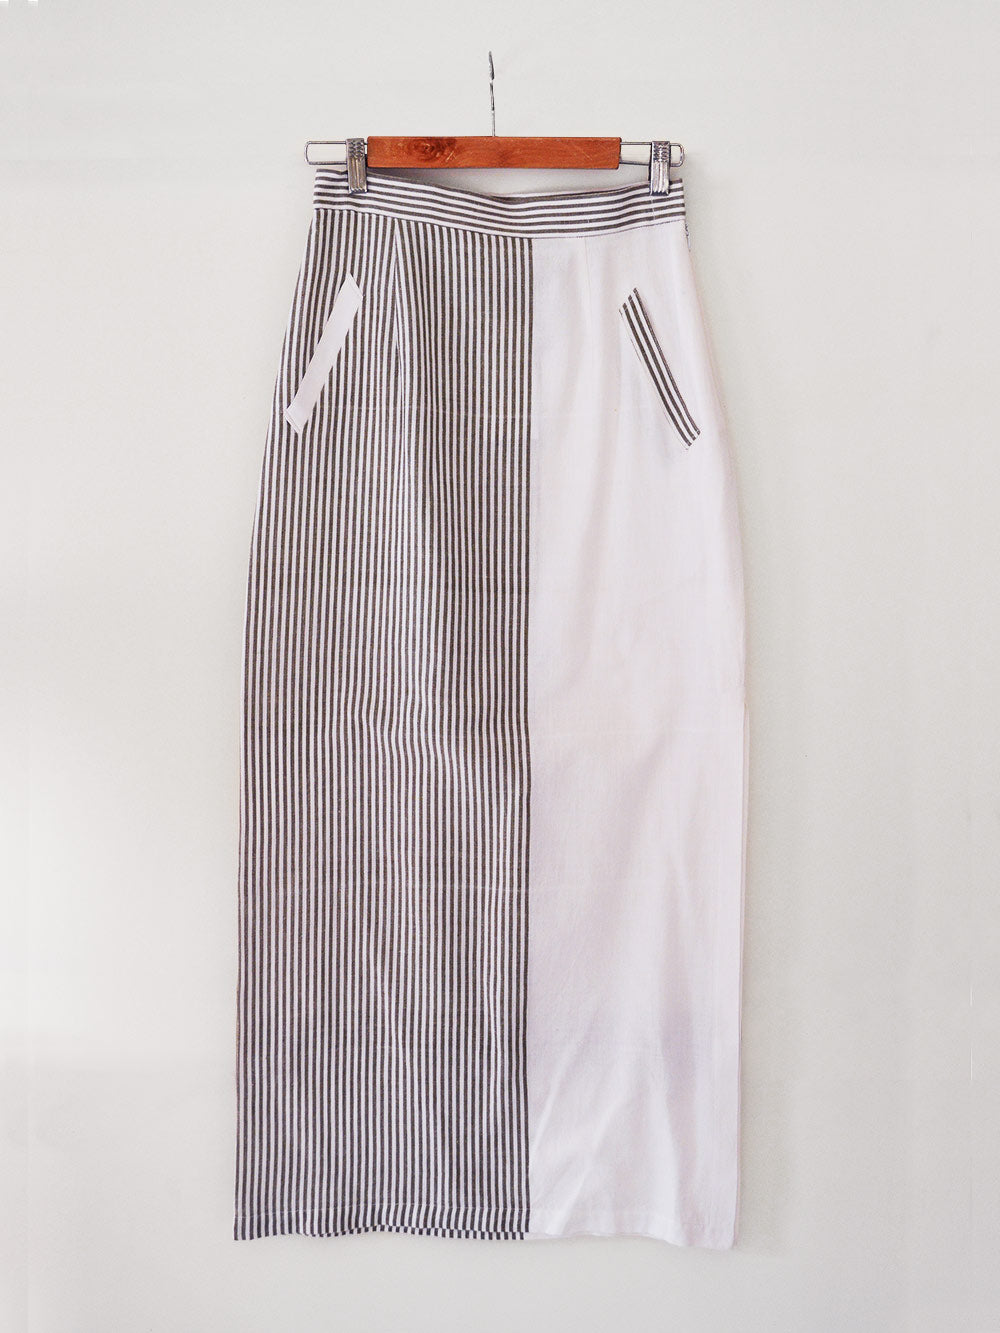 Striped Maxi Skirt with slit on the side made from 100% pure handwoven cotton, designed by Khumanthem Atelier